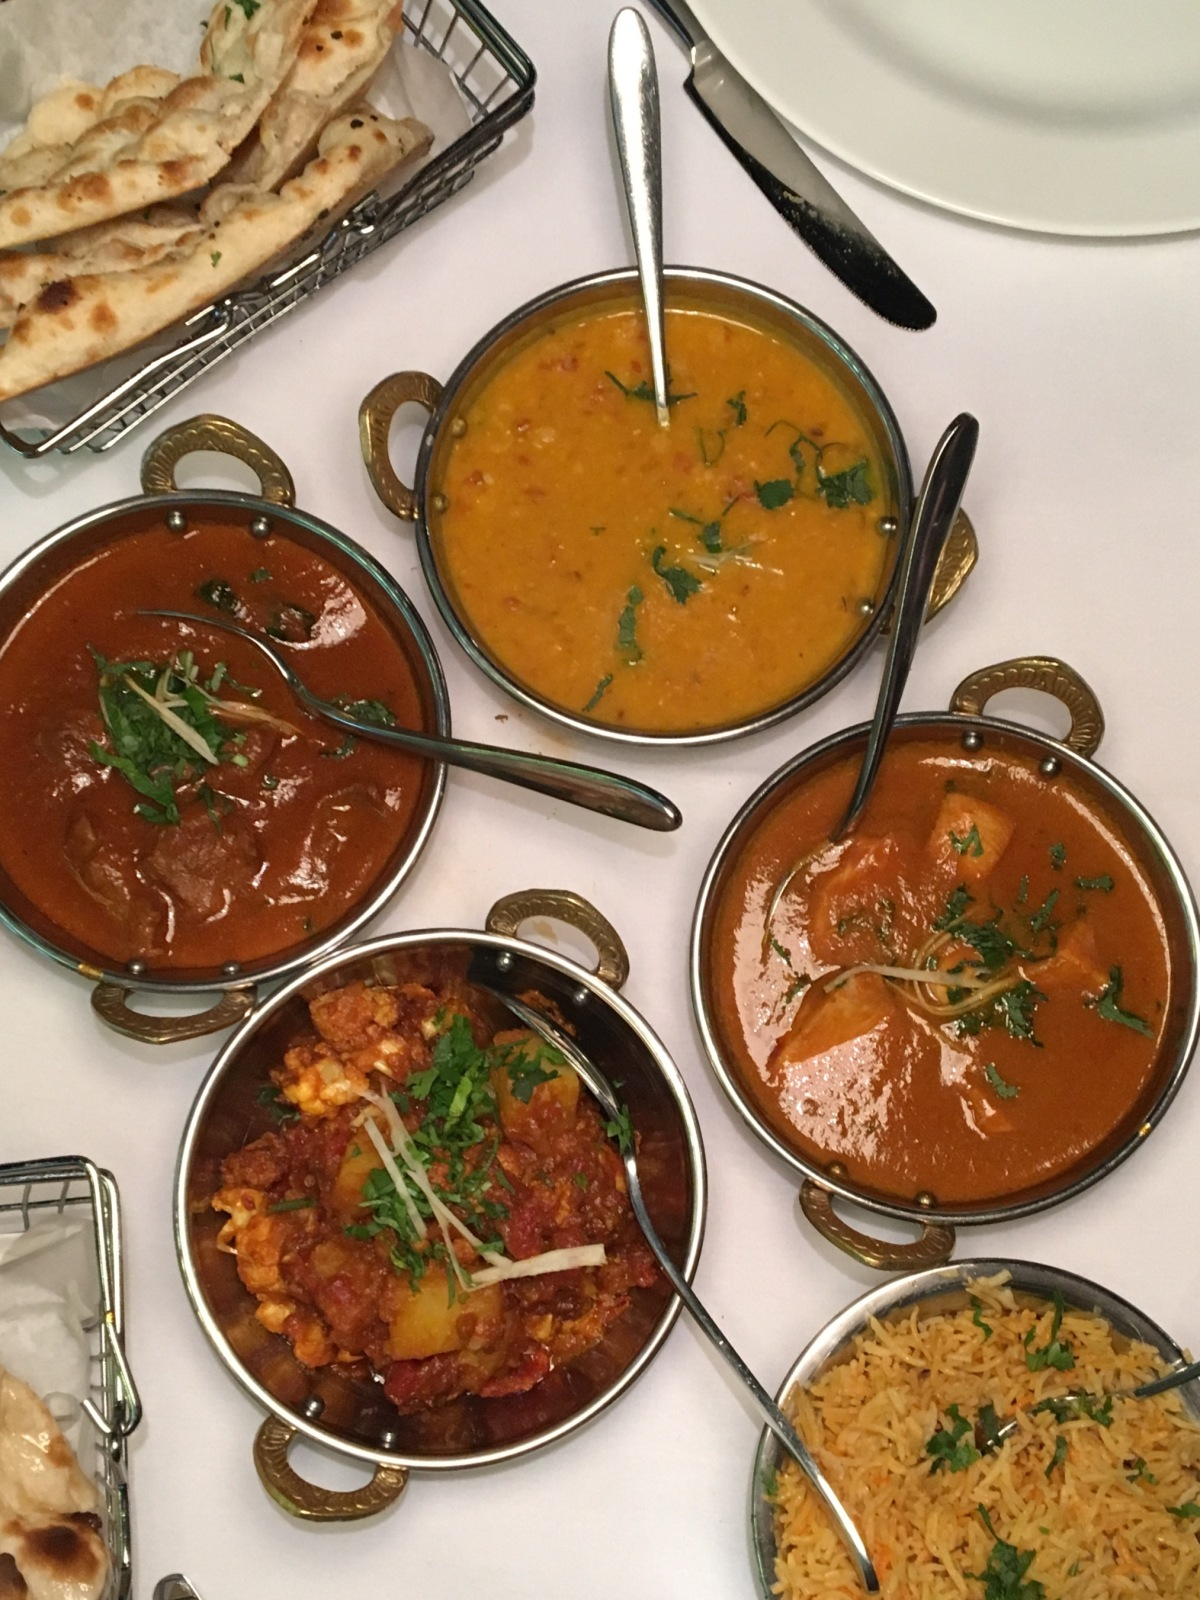 Gastronomic Gorman Birmingham Food Blogger The Gateway To India Mains 2